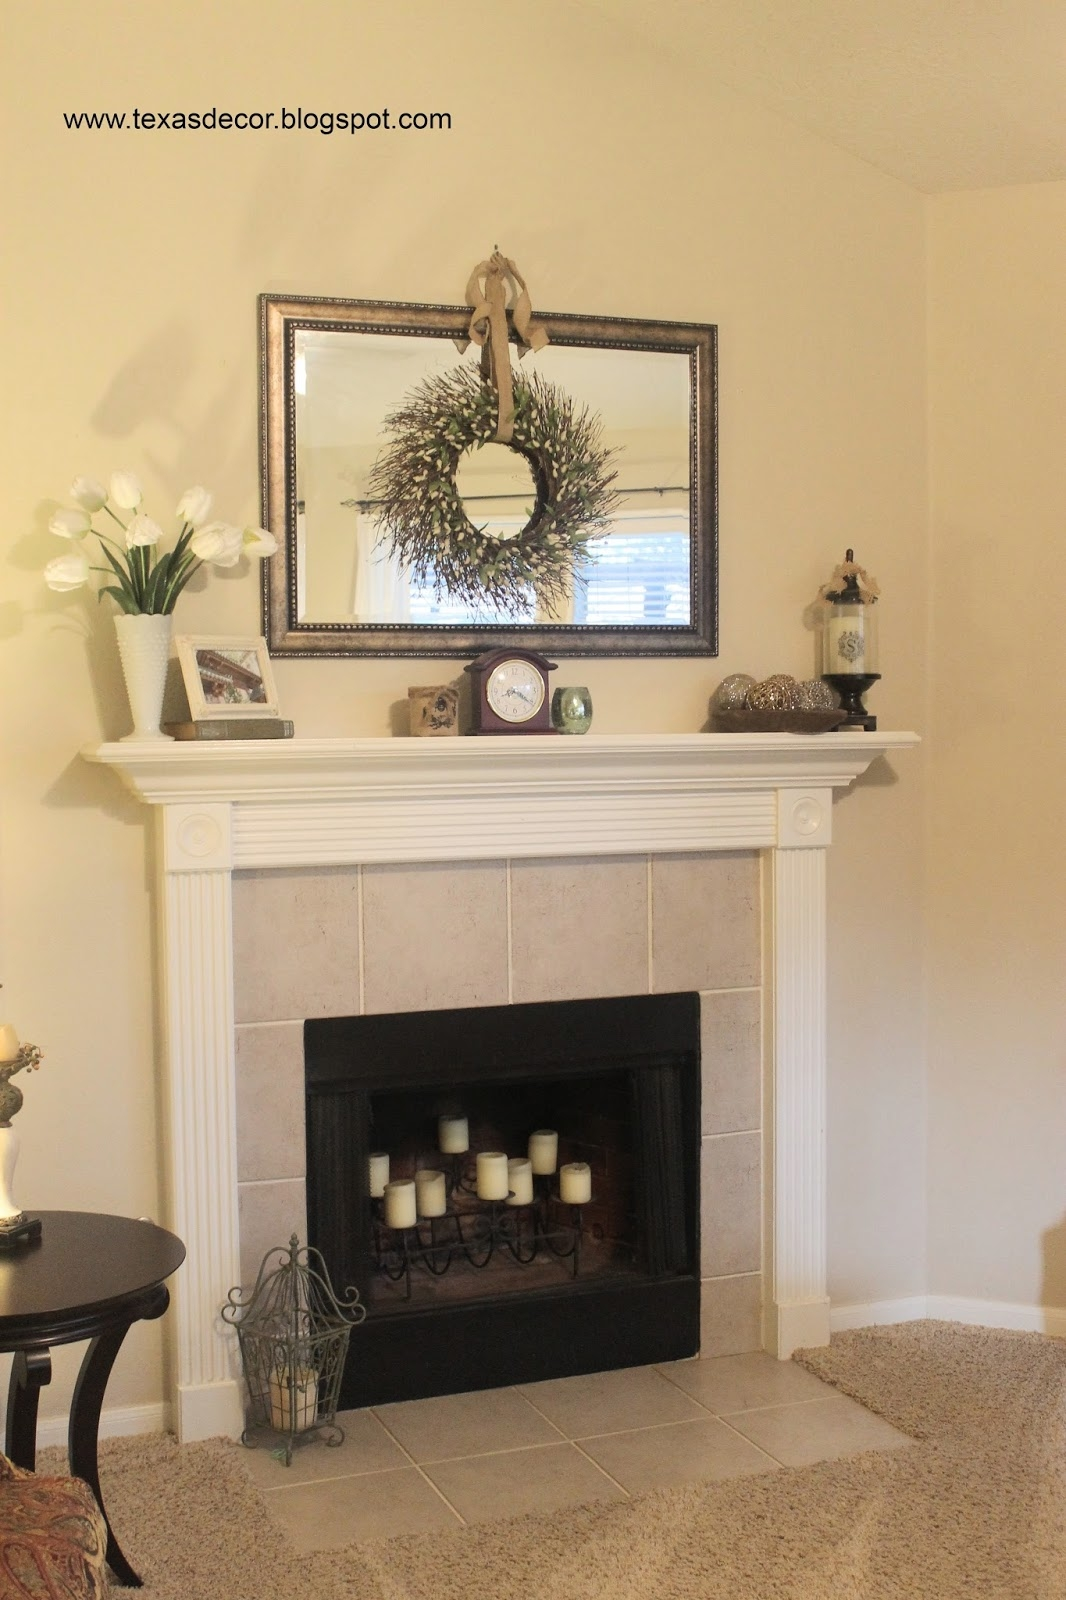 Mirror Above Fireplace Home Sweet Home Pinterest Mantle And Throughout Mantlepiece Mirrors (Image 8 of 15)